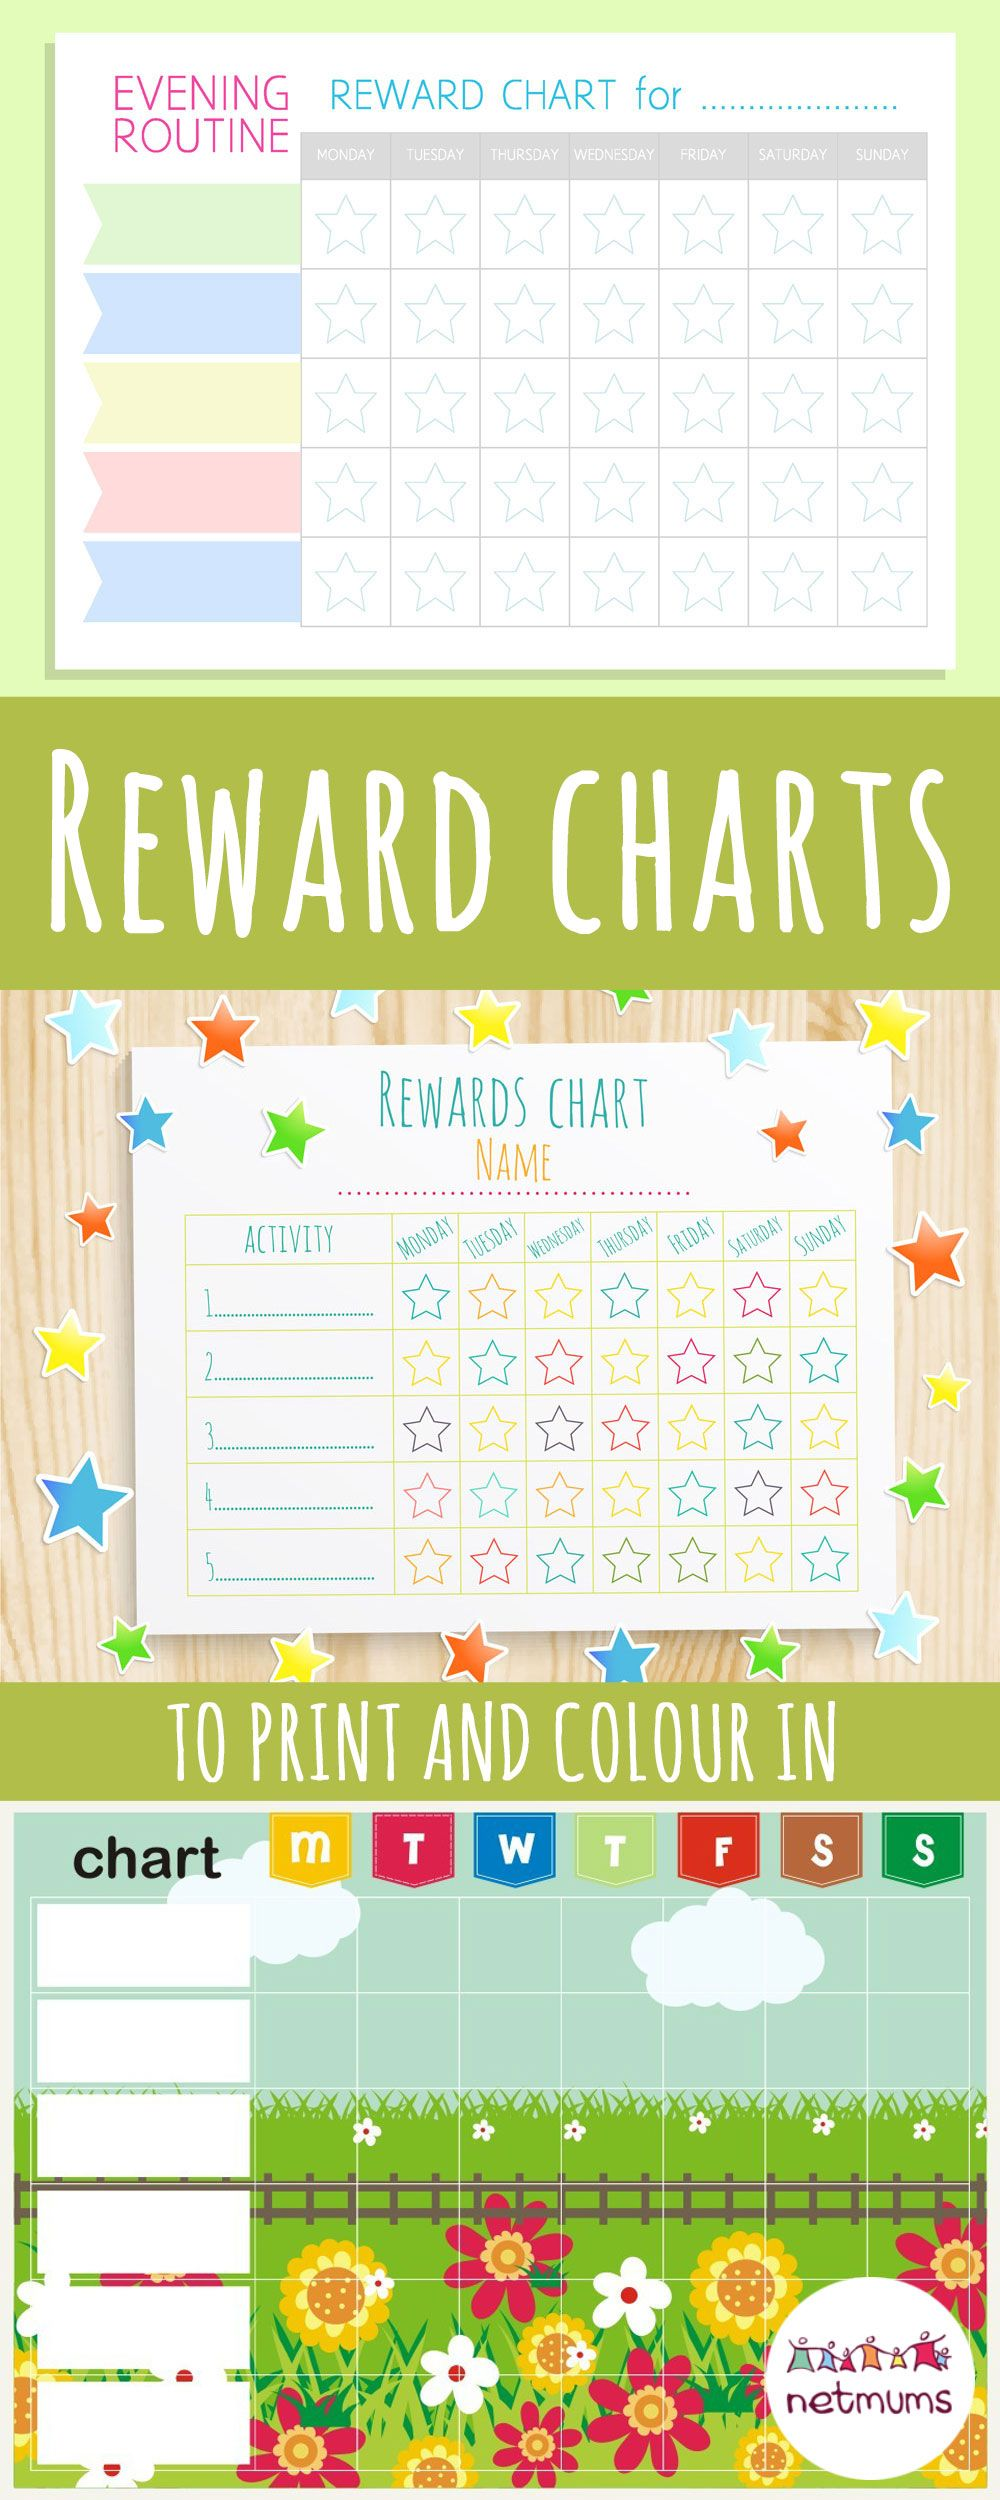 Colouring in reward charts - Reward Charts To Print And Colour In